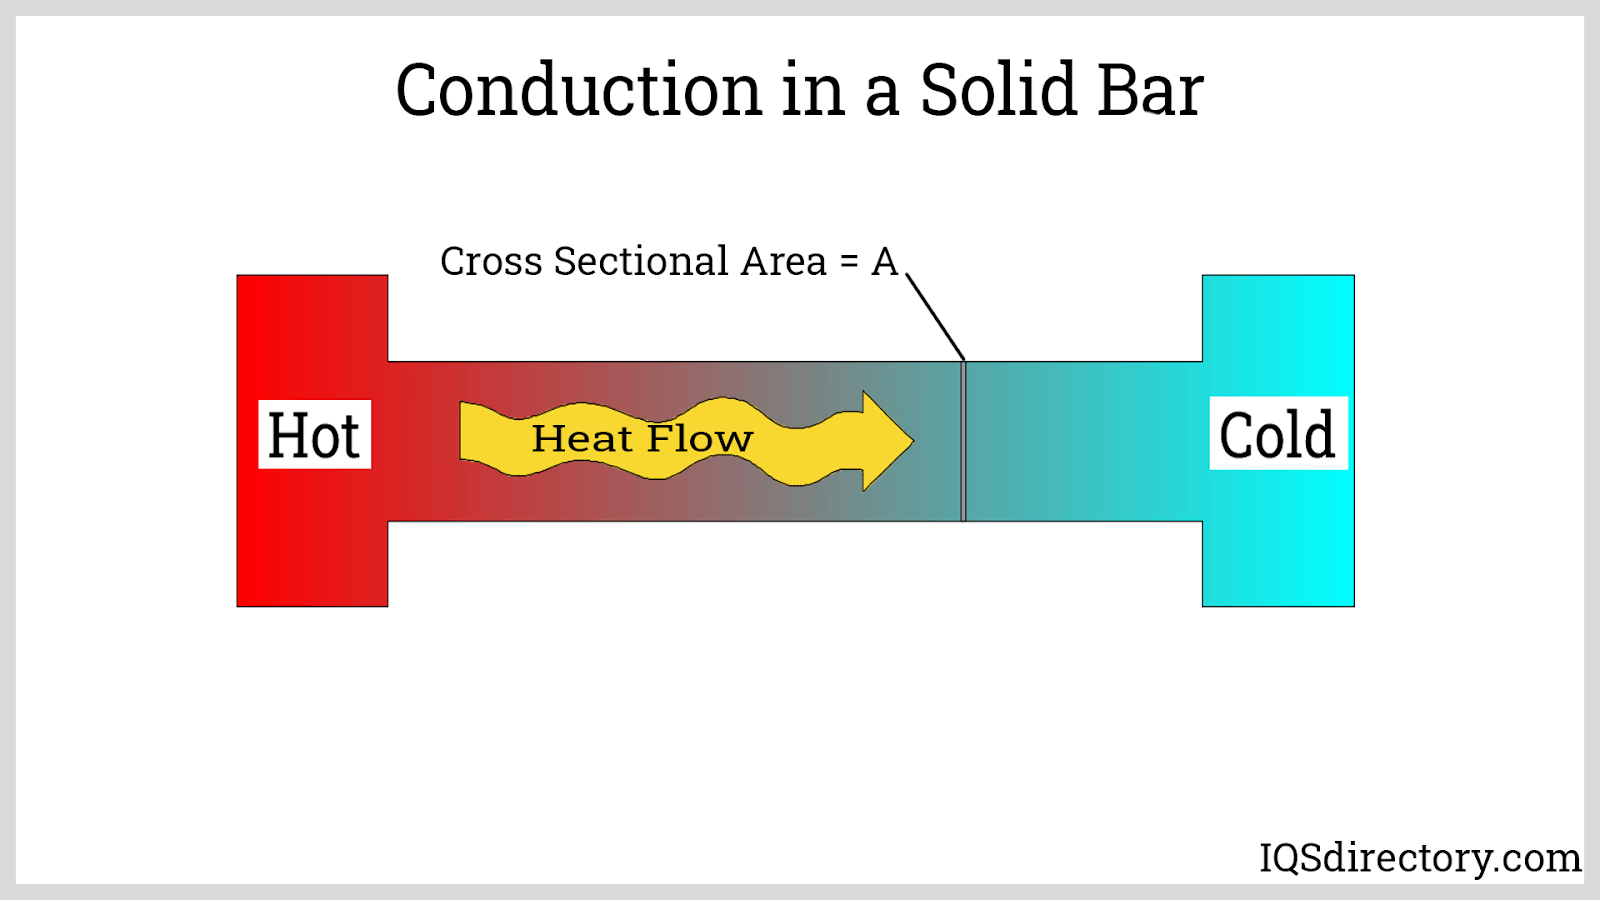 Conduction in a Solid Bar